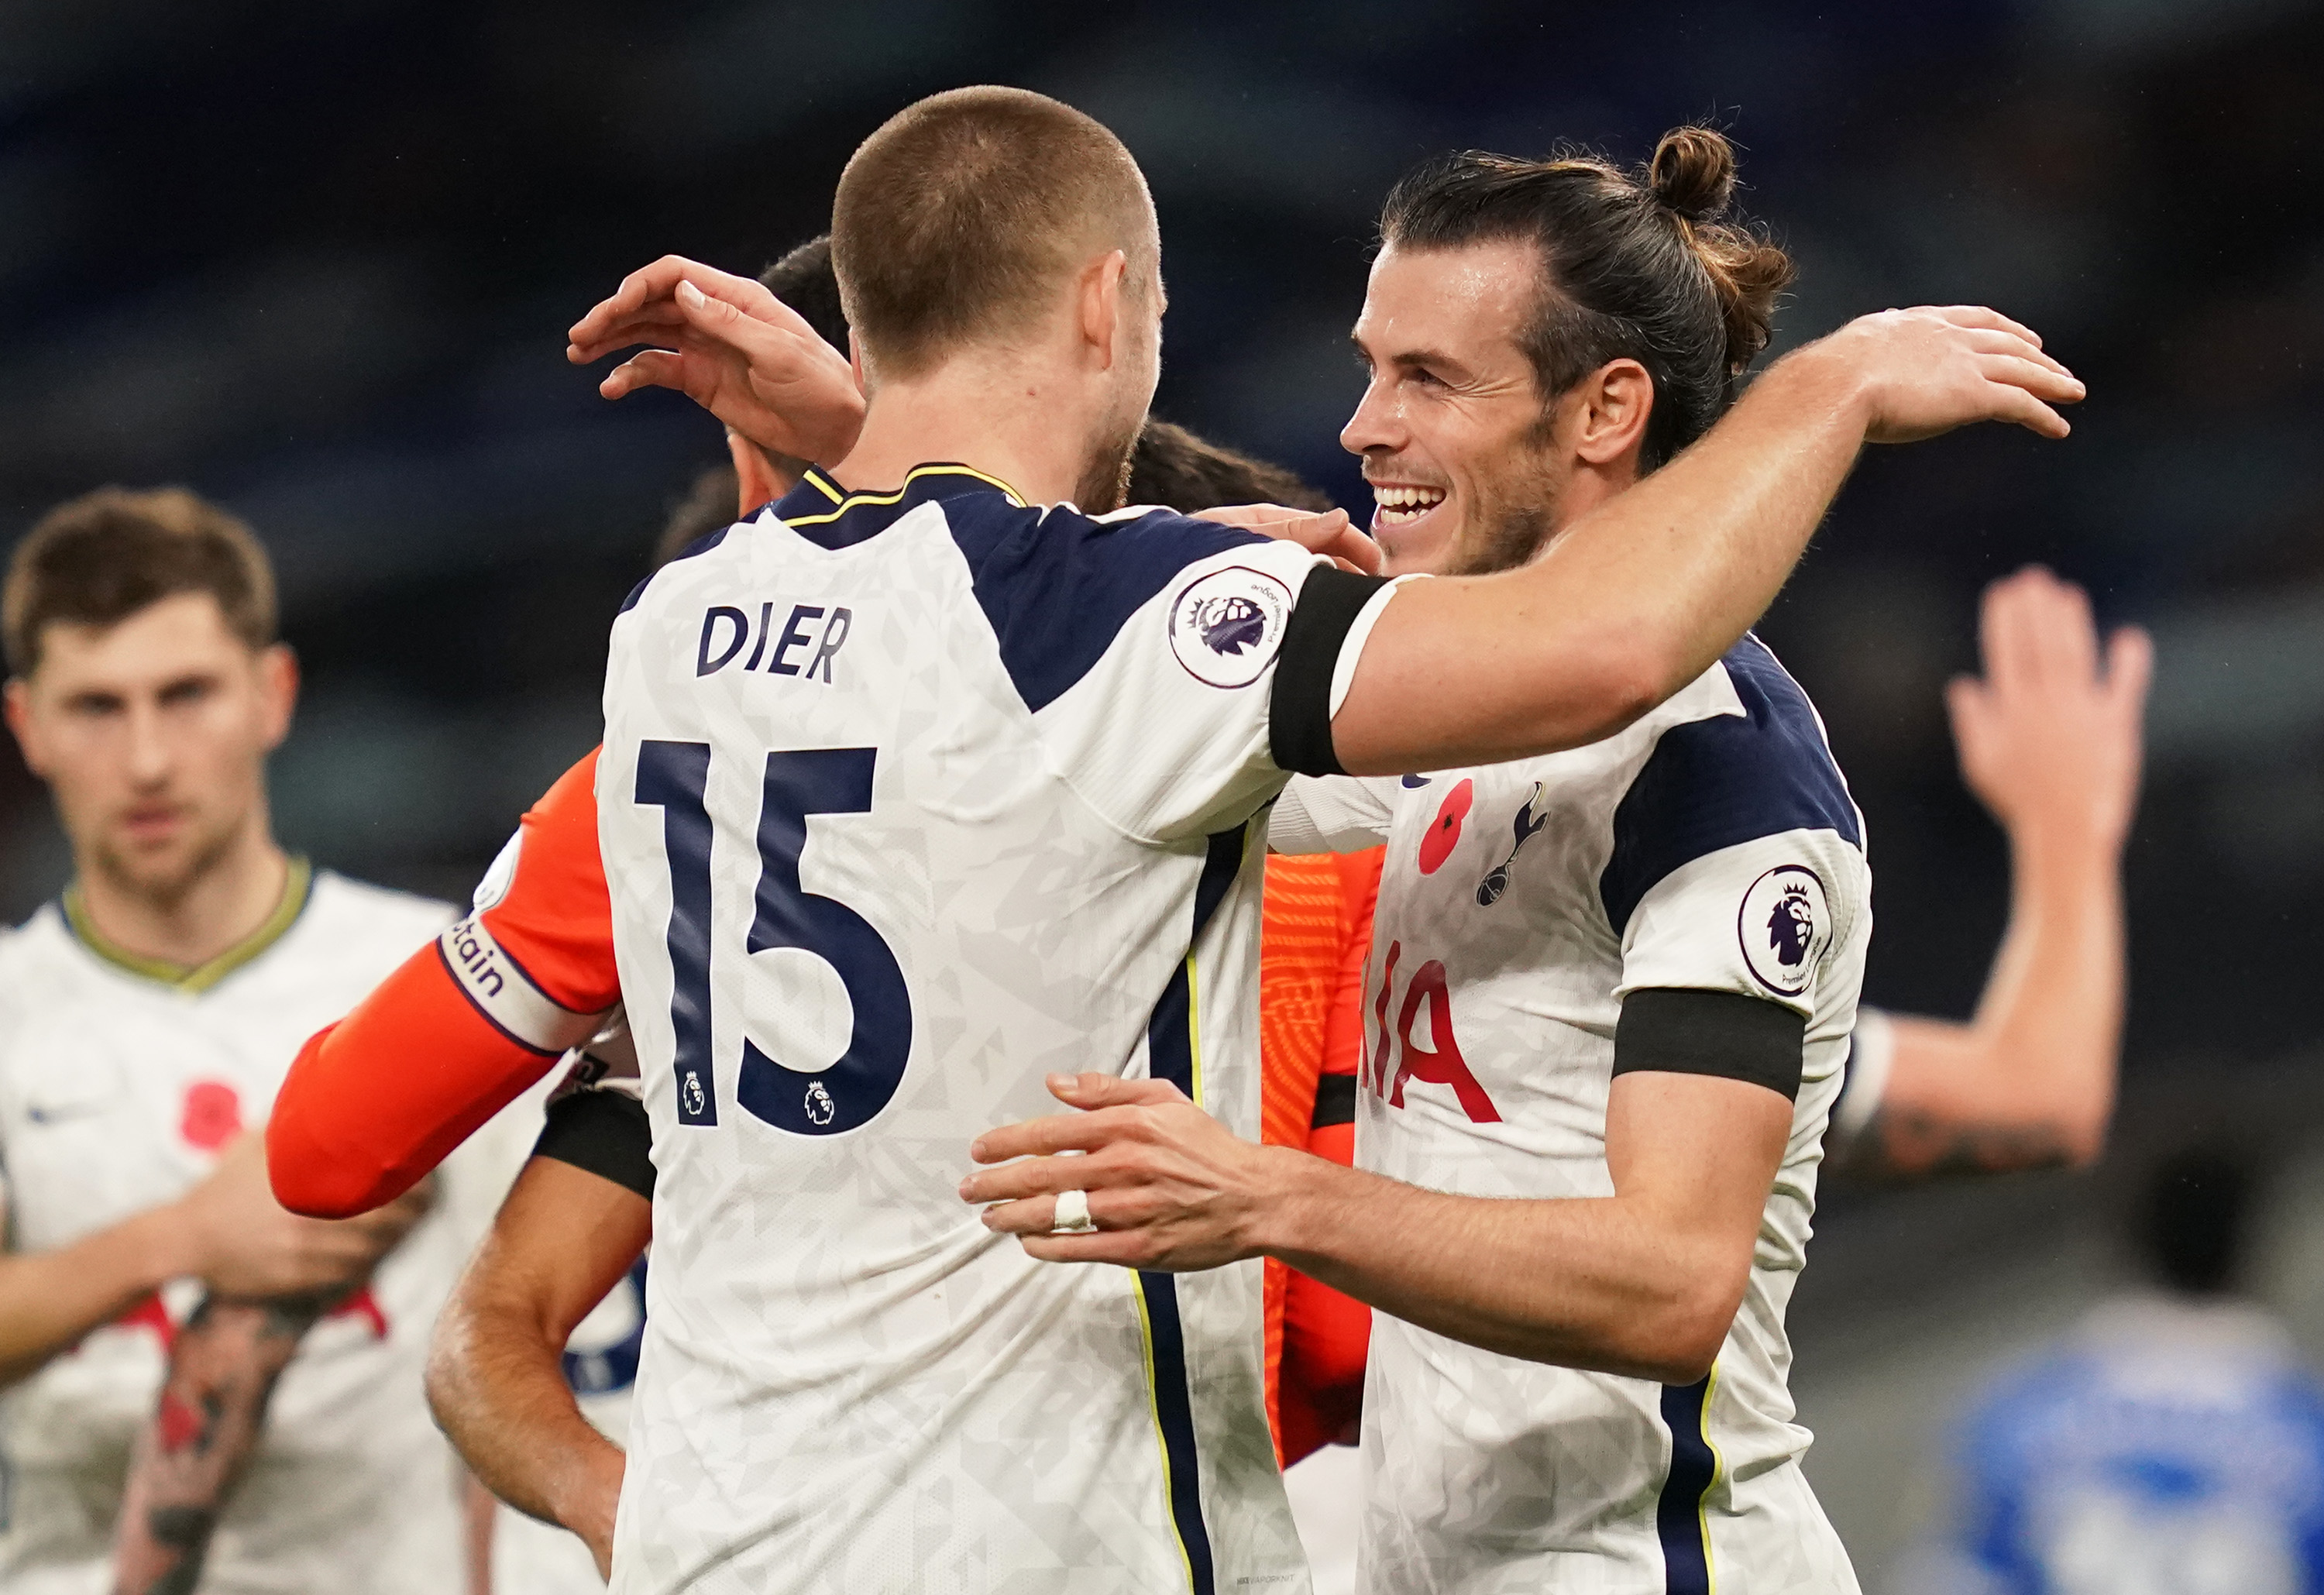 tottenham hotspur v brighton and hove albion premier league - Harry Kane believes Tottenham can win the Premier League